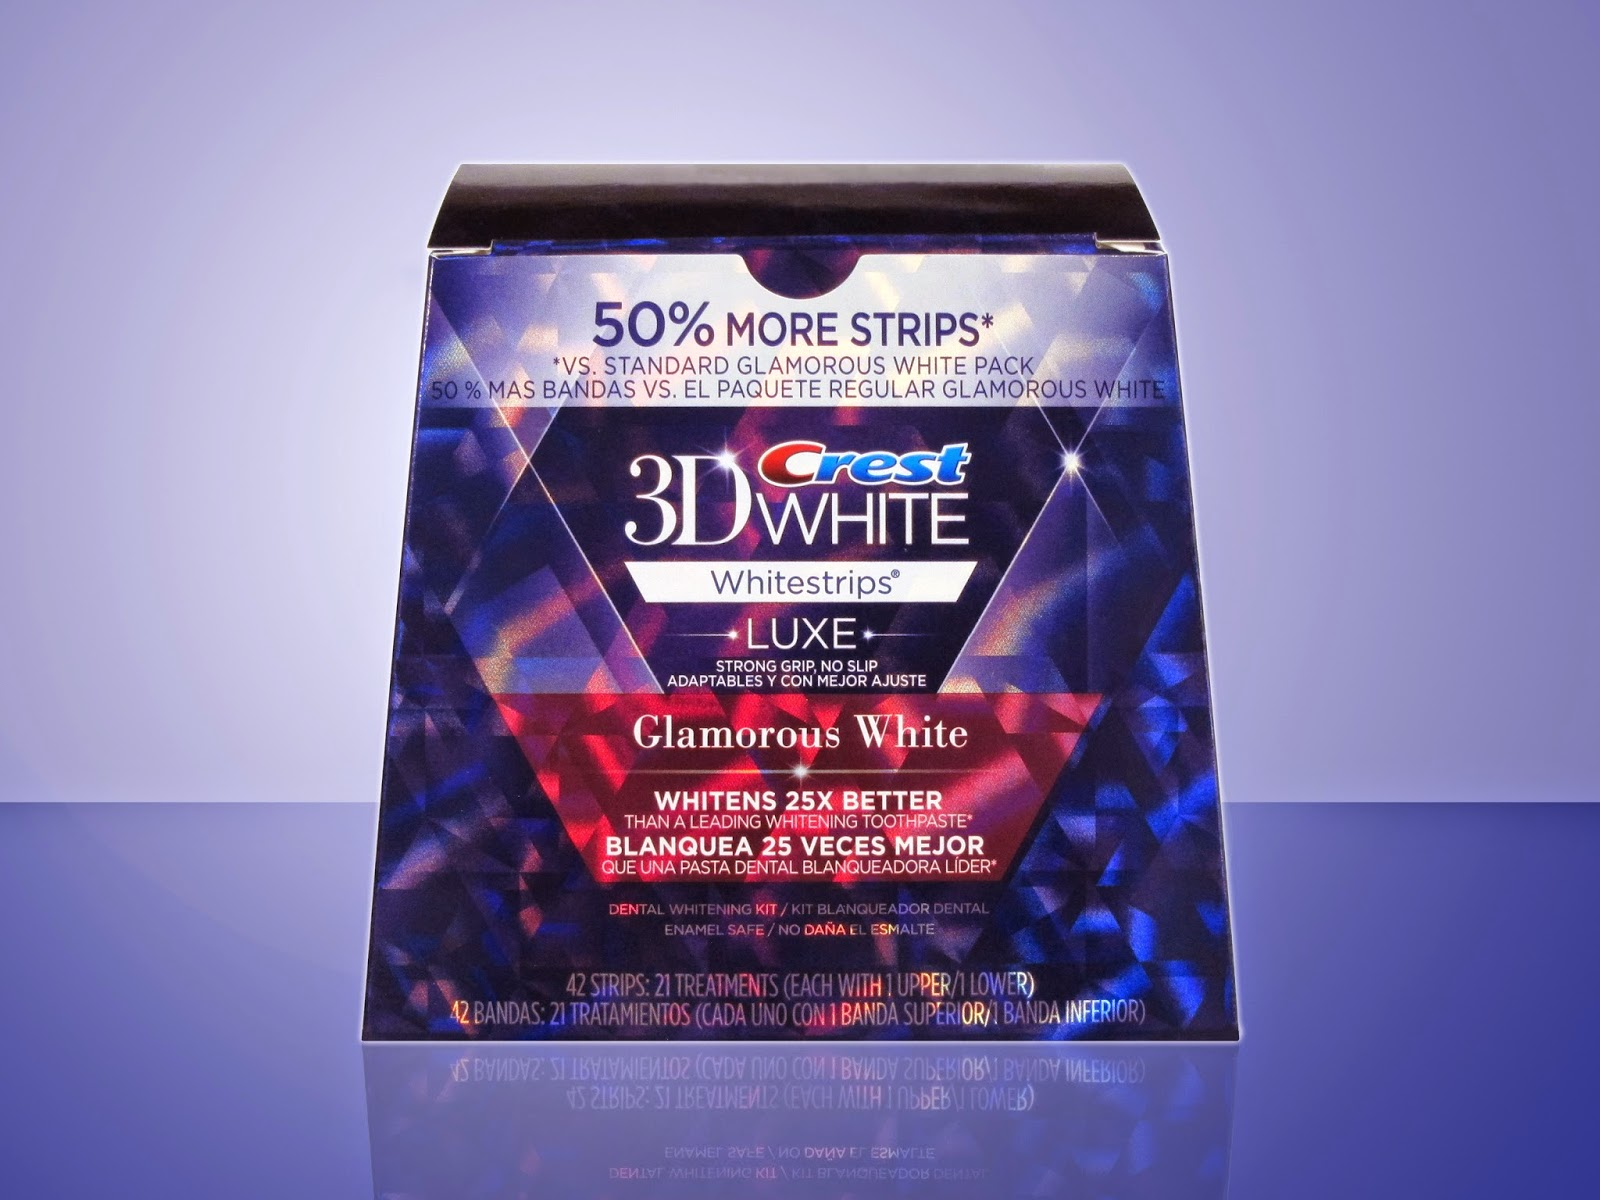 Crest 3D White Luxe Whitestrips folding carton